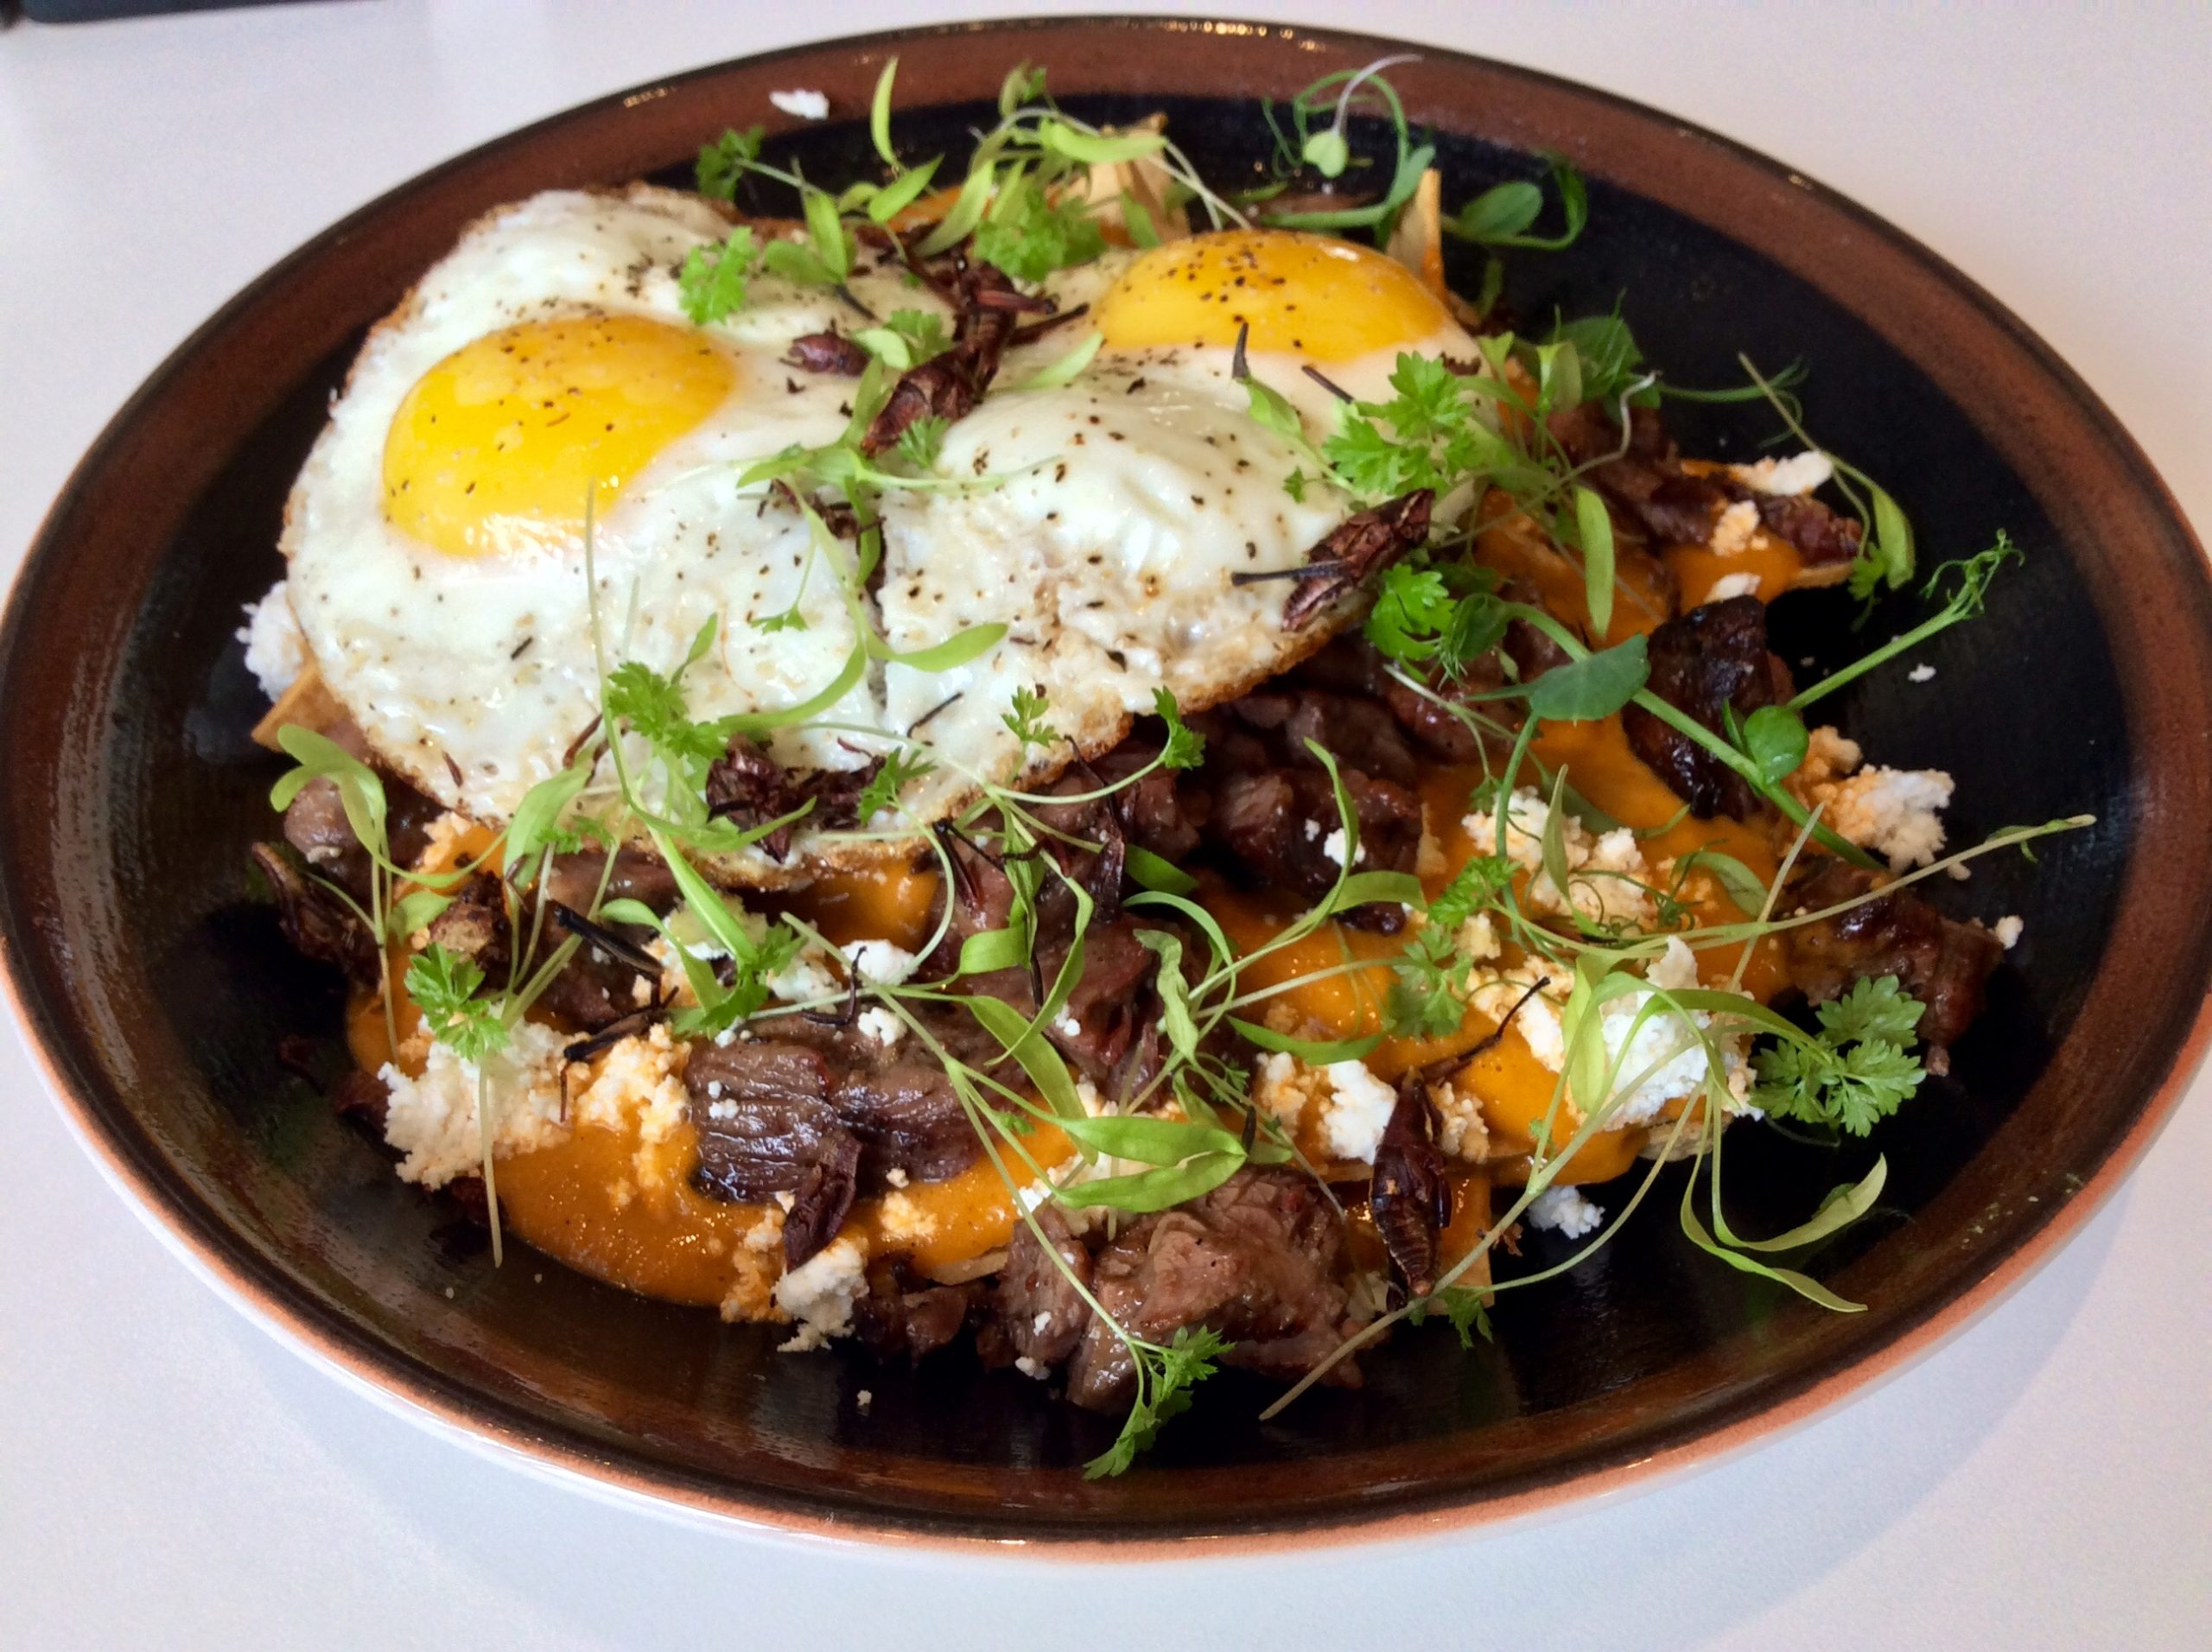 Photo of chilaquiles topped with a fried egg.